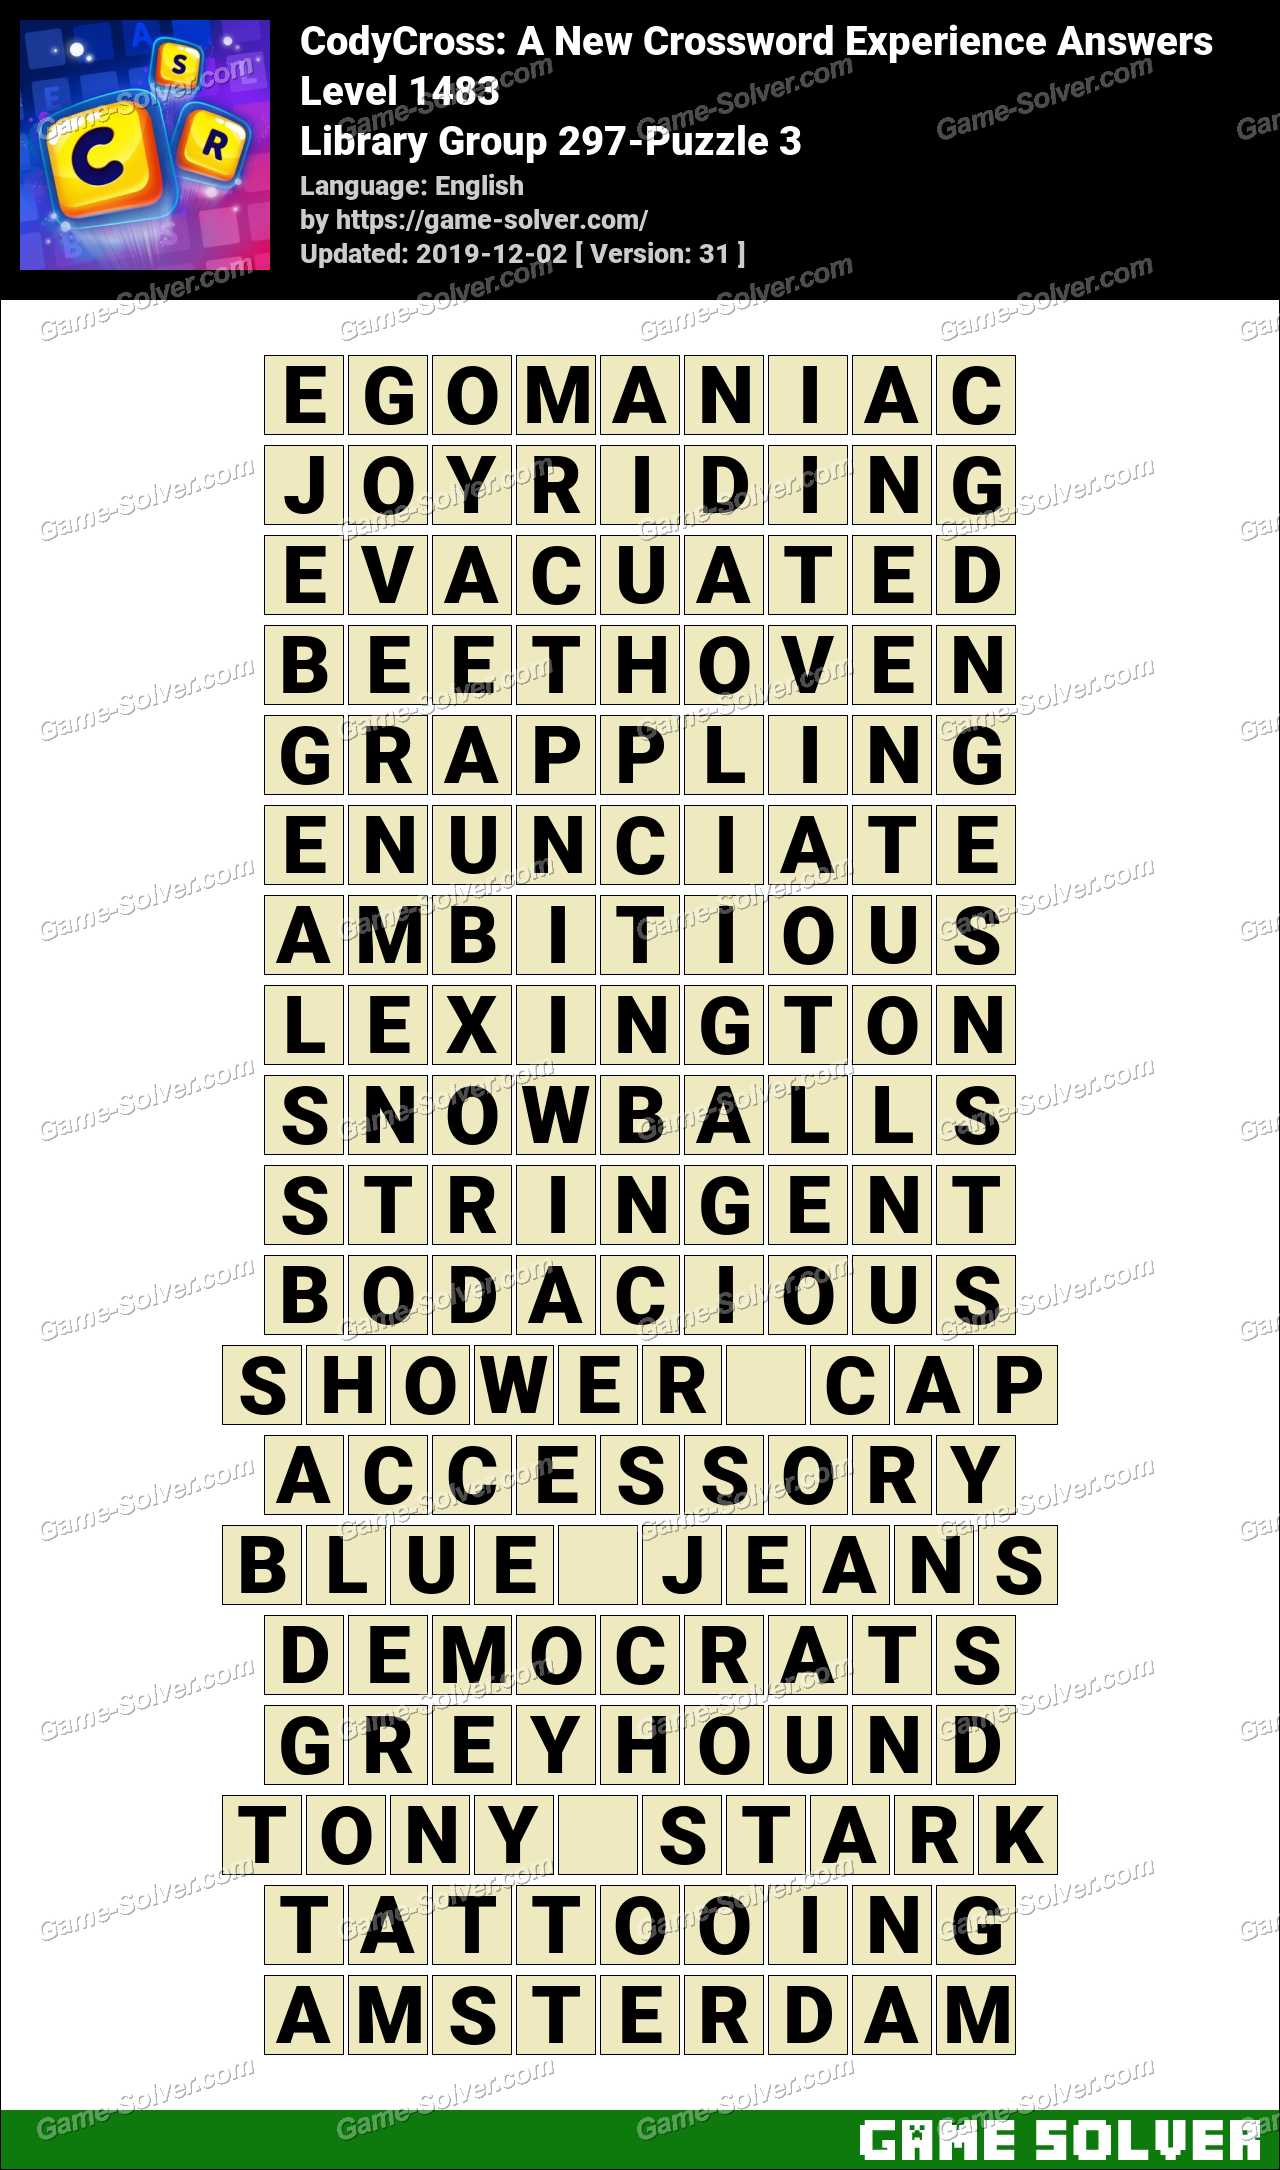 CodyCross Library Group 297-Puzzle 3 Answers